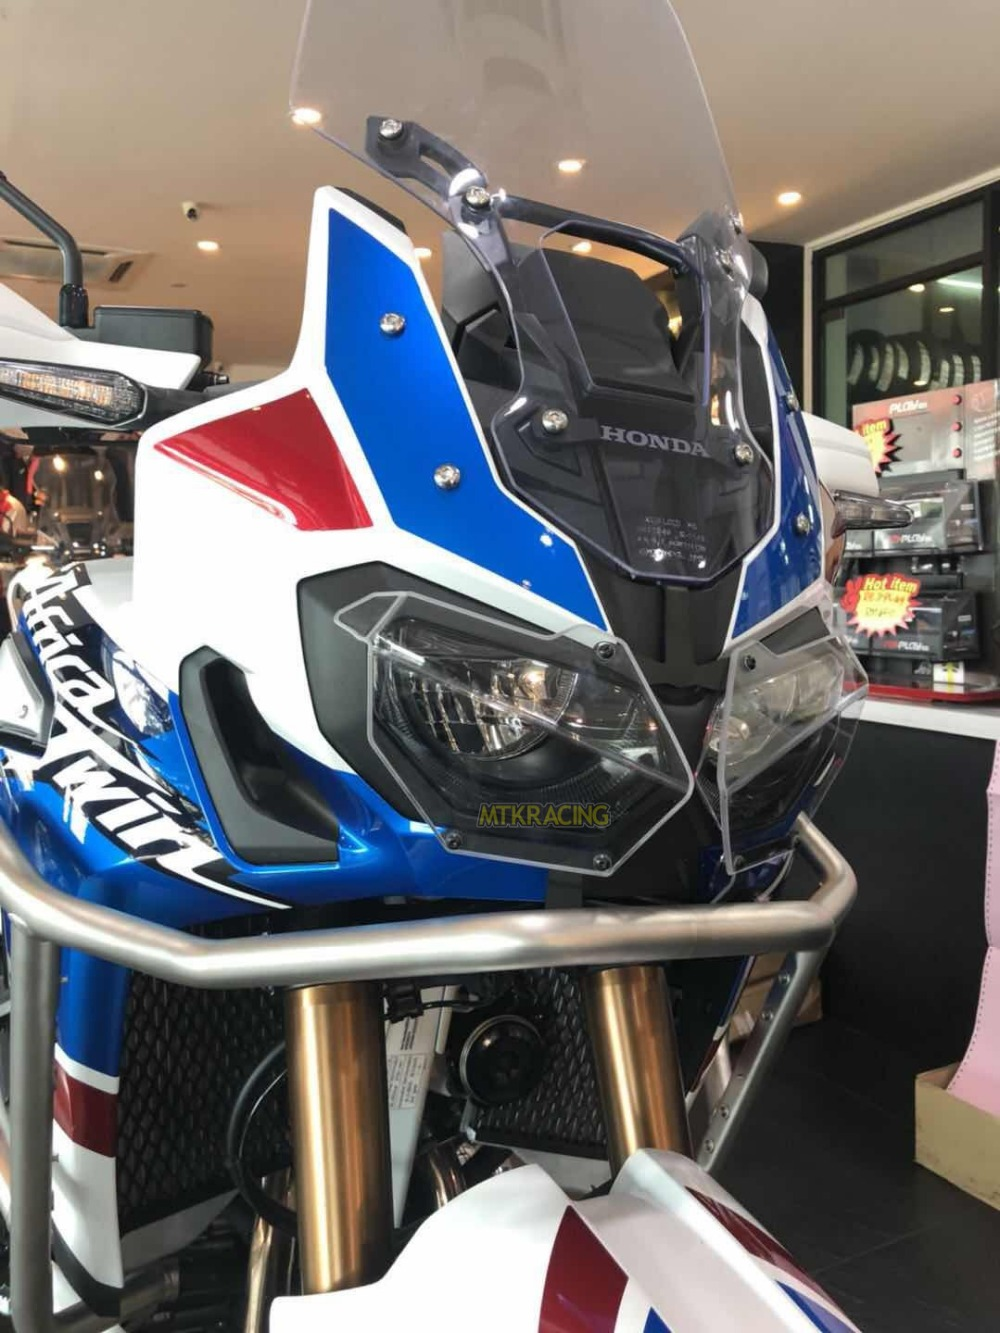 MTKRACING For Honda CRF1000L CRF 1000L CRF1000 L Africa Twin 2014-2018 Motorcycle modification Headlight Cover Protector